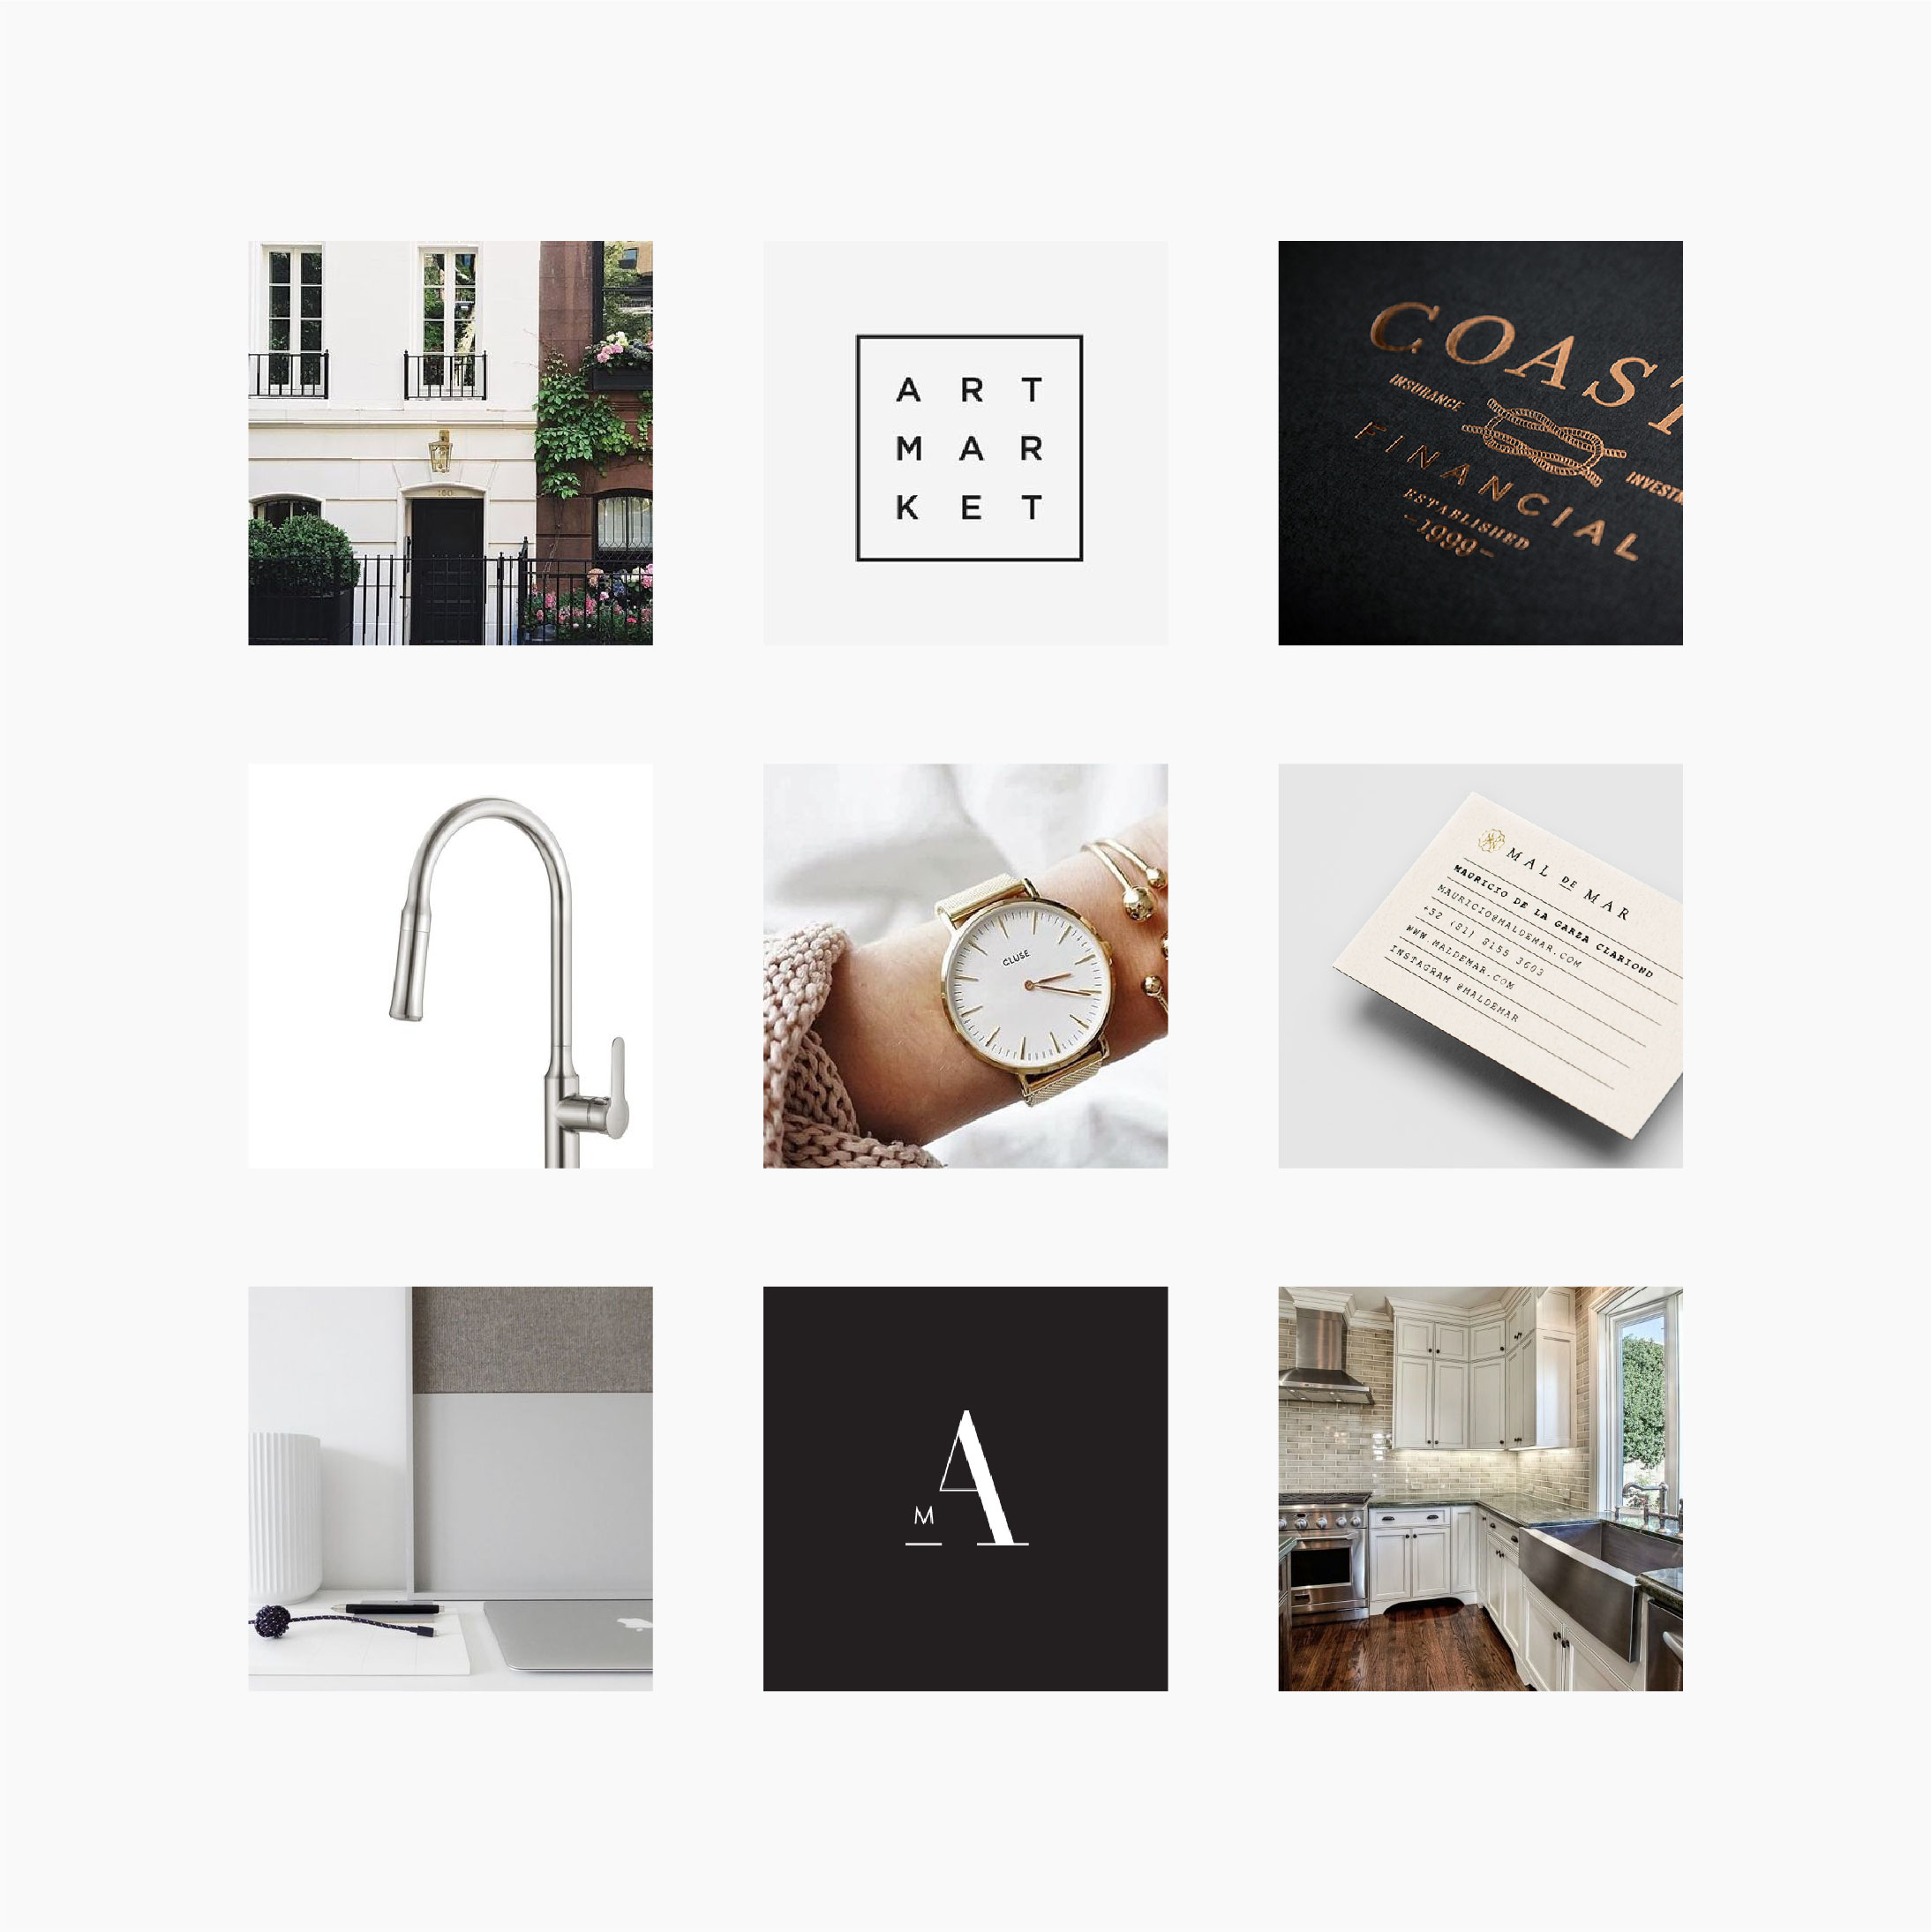 Looking for branding inspiration for your small business?This mood board is sophisticated with a heritage feeling. Serif fonts and neutral colors evoke the timelessness of the brand, while the sans serifs and clean lines keep it modern.